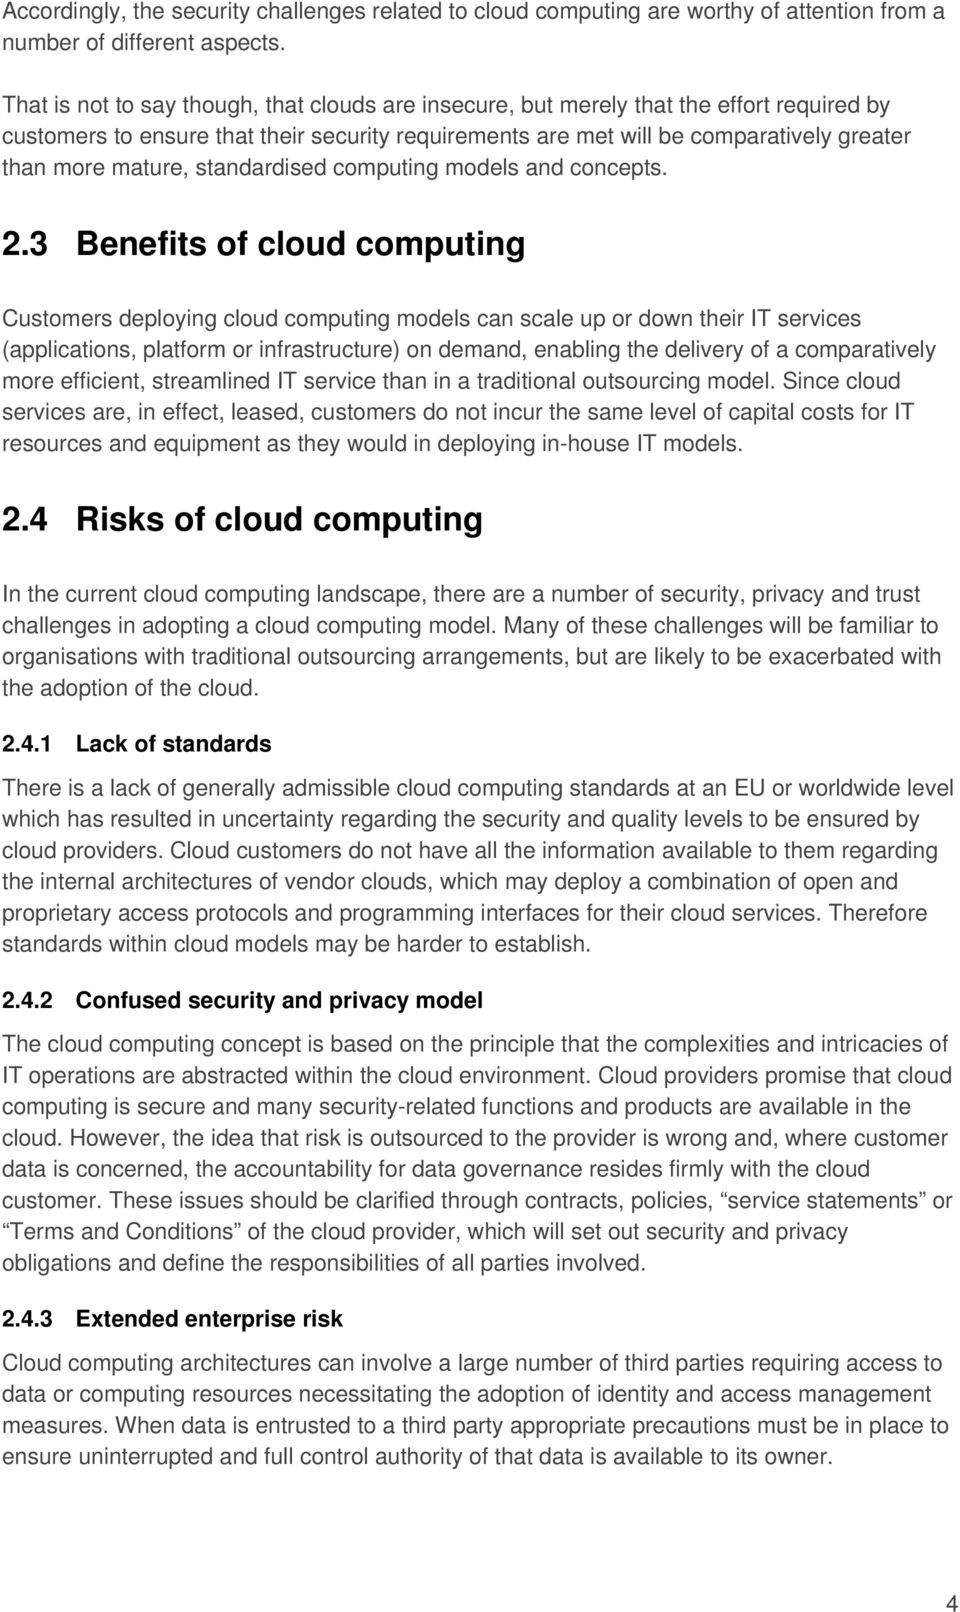 mature, standardised computing models and concepts. 2.